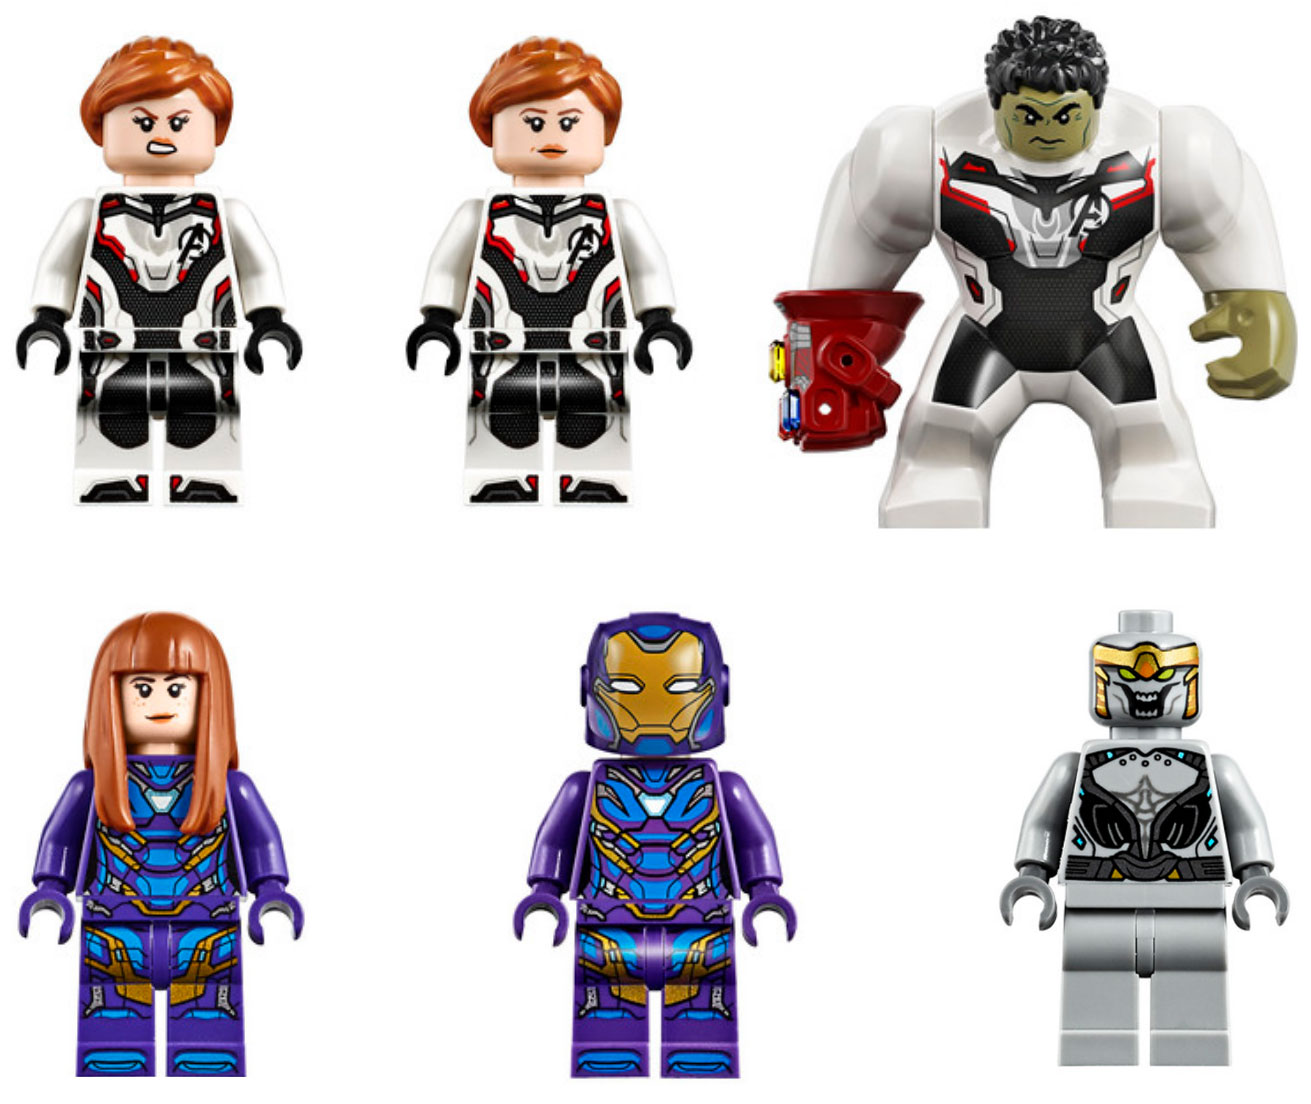 endgame-helicopter-minifigures-03